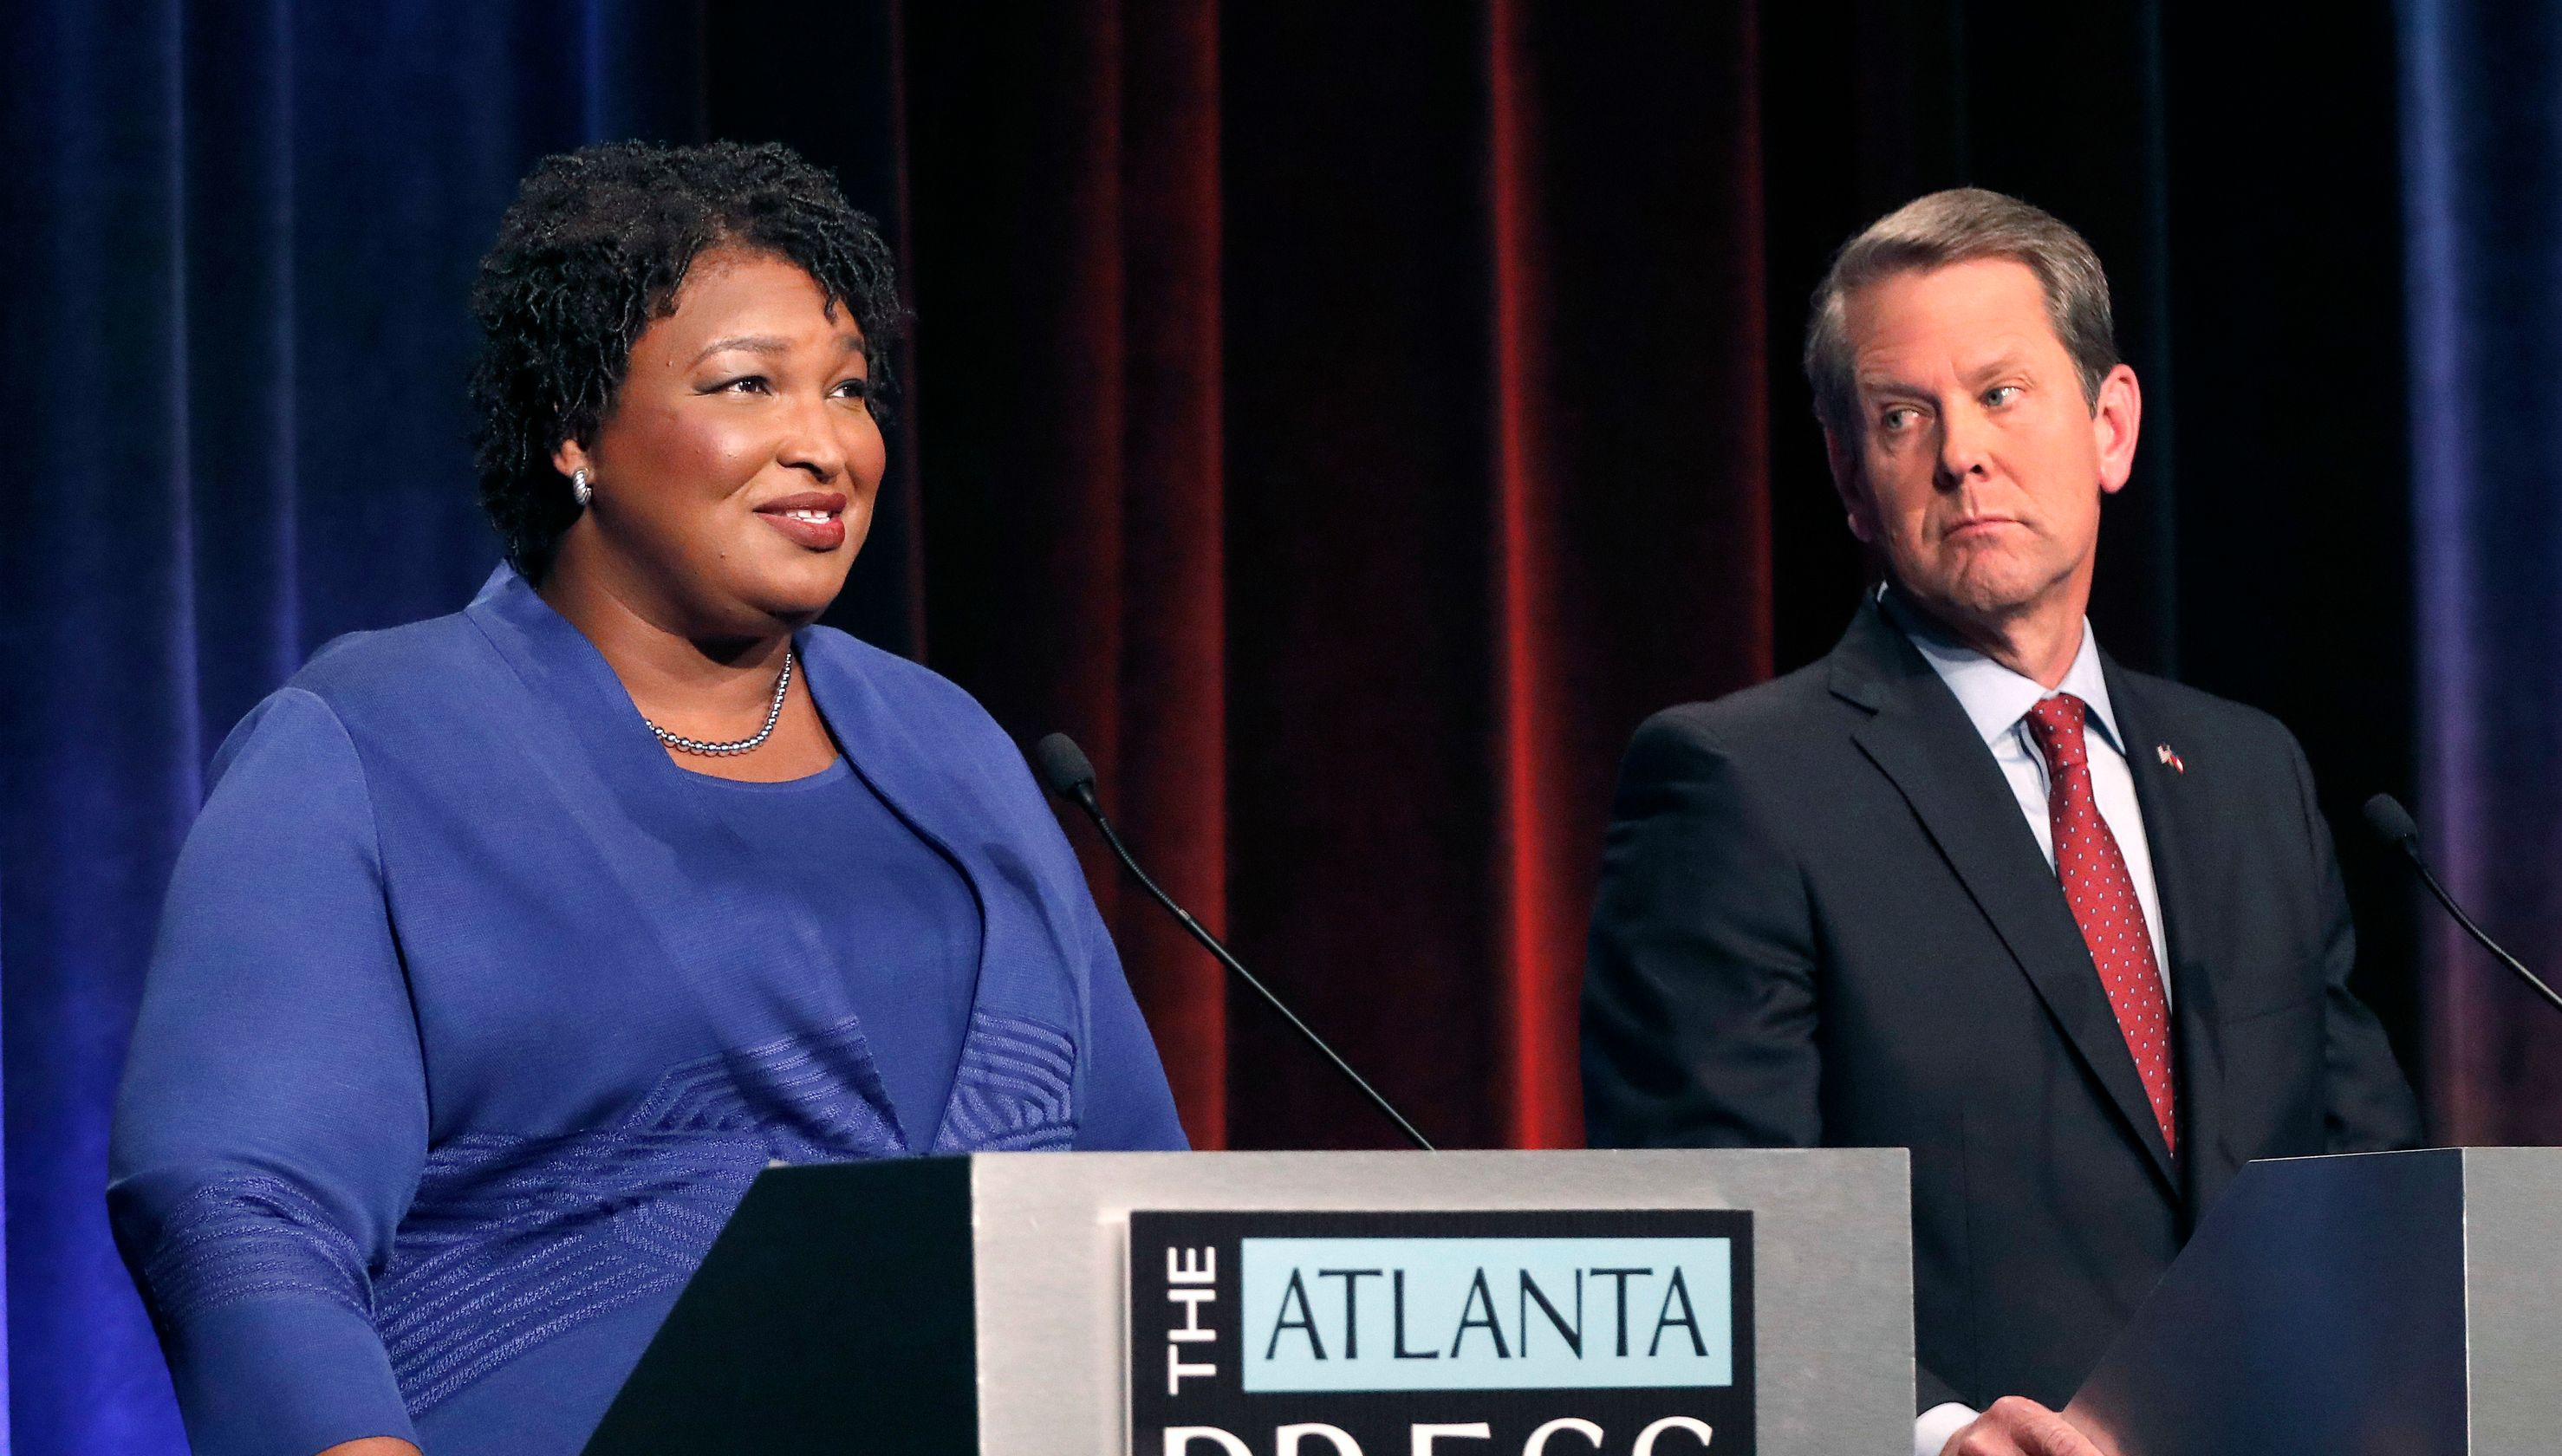 Tuesday, Oct. 23, 2018 file photo, Democratic gubernatorial candidate for Georgia Stacey Abrams, left, speaks as her Republican opponent Secretary of State Brian Kemp looks on during a debate in Atlanta. (Photo: John Bazemore, AP)